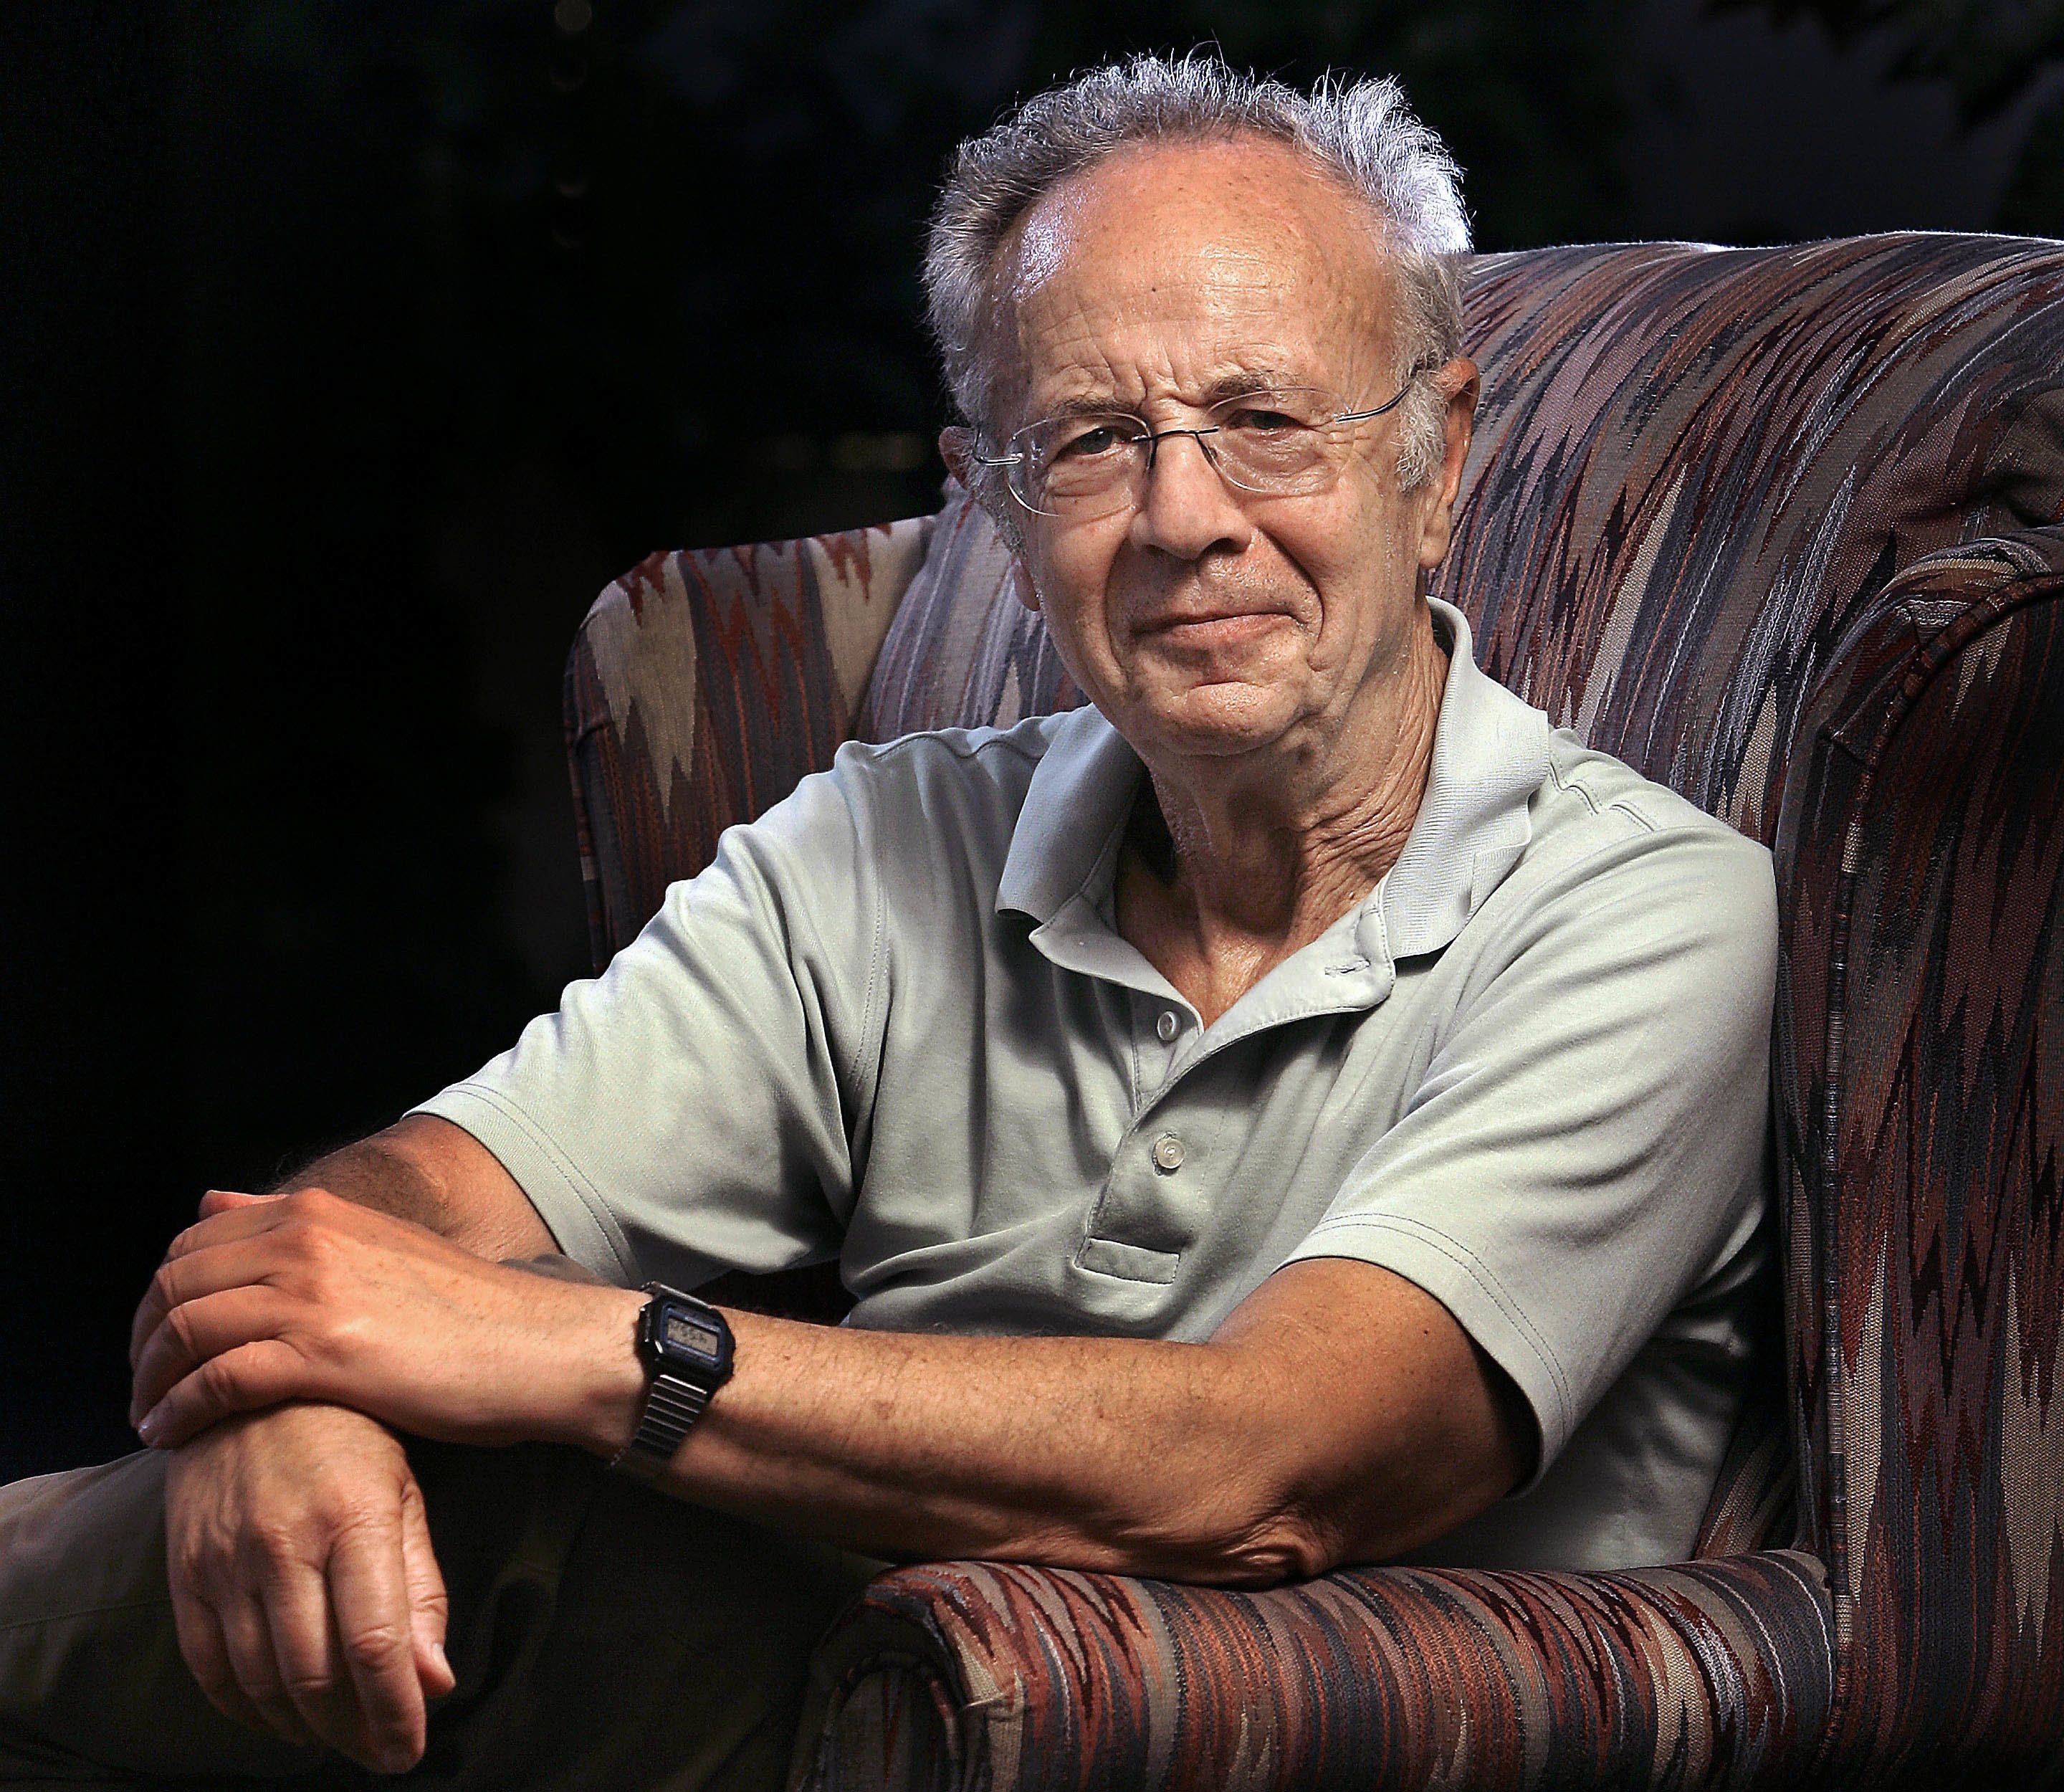 UNITED STATES - JULY 08:  Andrew 'Andy' Grove, co-founder and senior adviser to Intel Corp., poses before an interview in his office in Los Altos, California, U.S., on Tuesday, July 8, 2008. Grove asked students in his Stanford University business school seminar last year to determine whether an electric car market could thrive in the U.S. Their conclusion: It can't.  (Photo by Tony Avelar/Bloomberg via Getty Images)